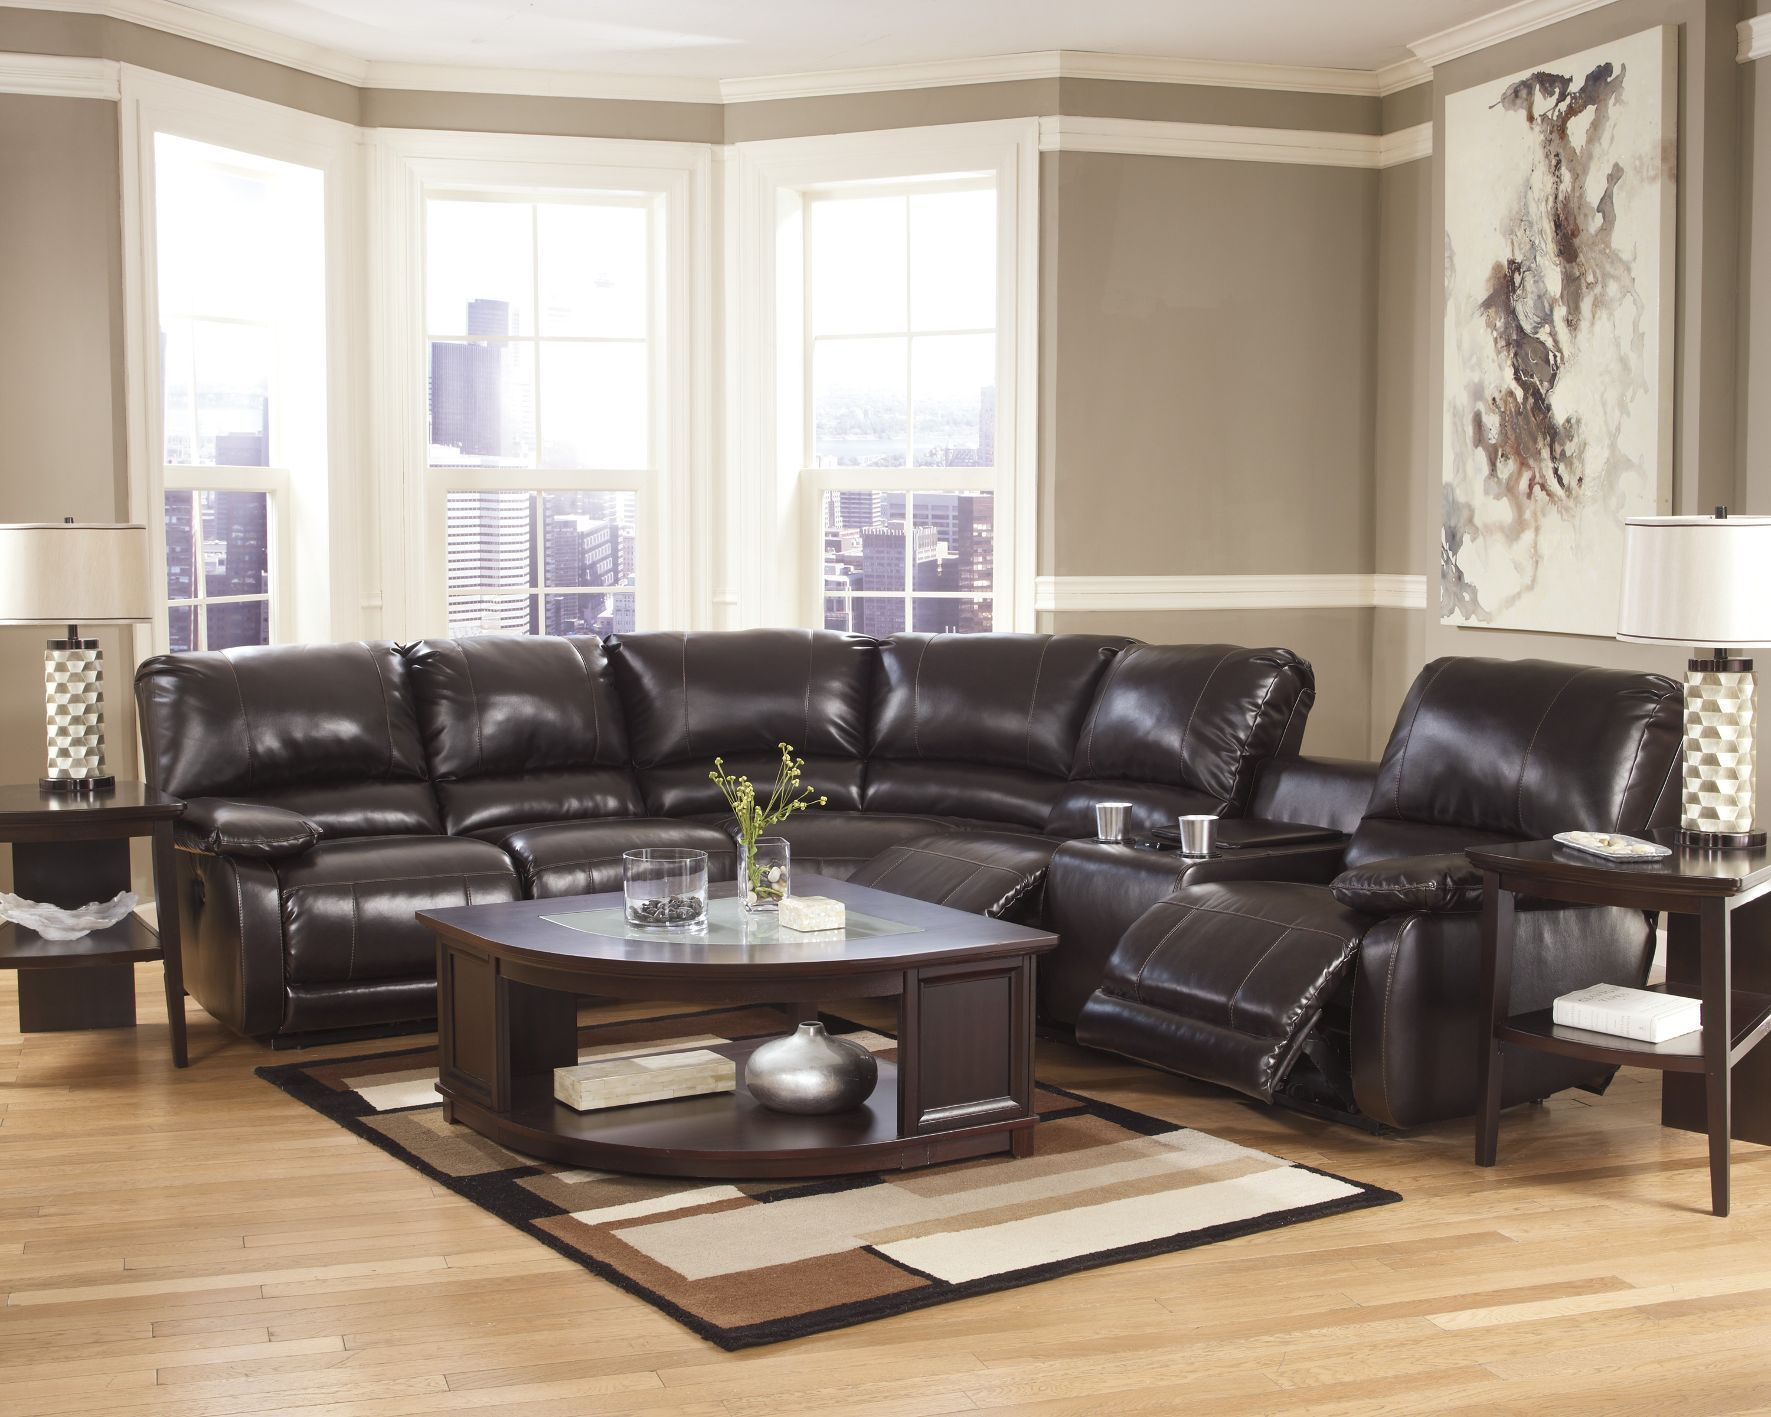 There Are Various Woods To Choose From Quality Materials Lead Free Long Lasting And Non Toxic Finishes Furniture Sectional Furniture Reclining Sectional